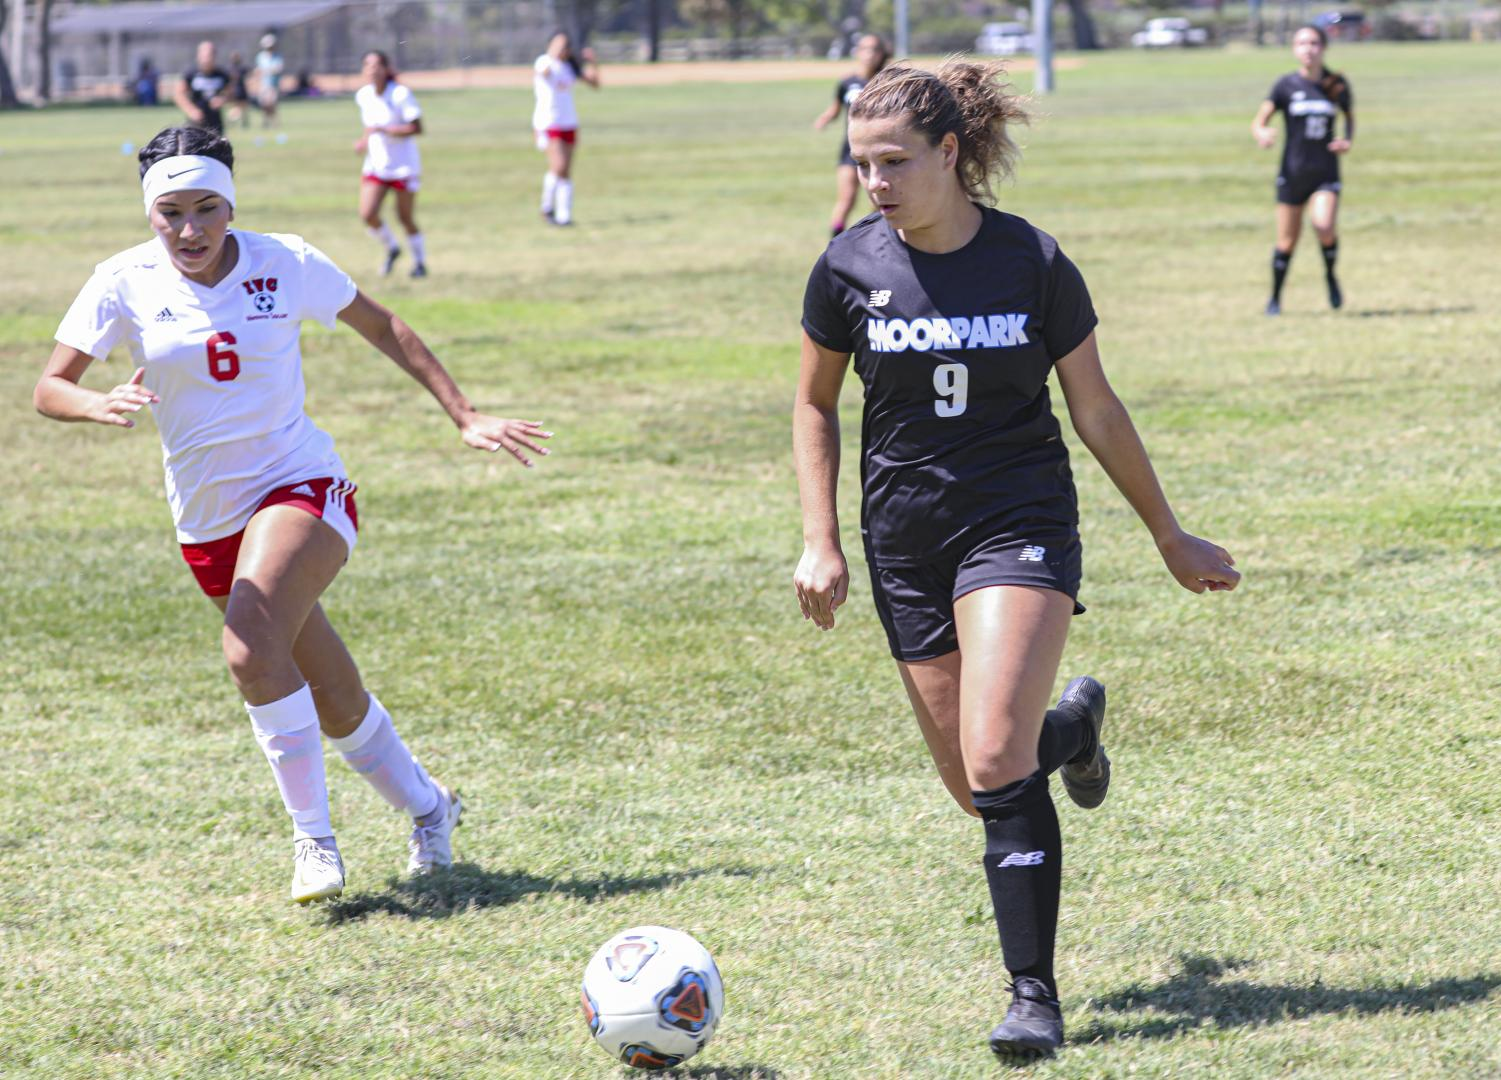 Moorpark Freshman Skylar Rusch maneuvers around Imperial Valley's defenses and heads for the goal during the season opener on Friday, Aug. 27, in Moorpark, CA. Moorpark College defeated Imperial Valley, 4-0.